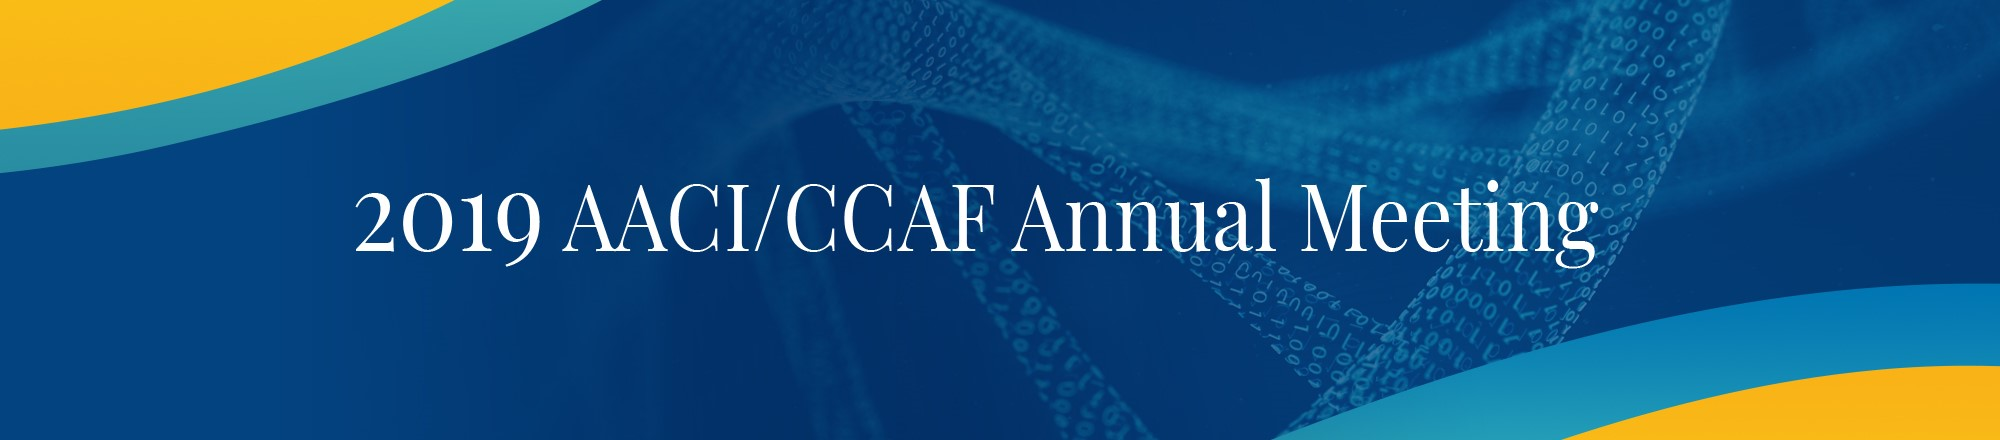 2019 AACI/CCAF Annual Meeting